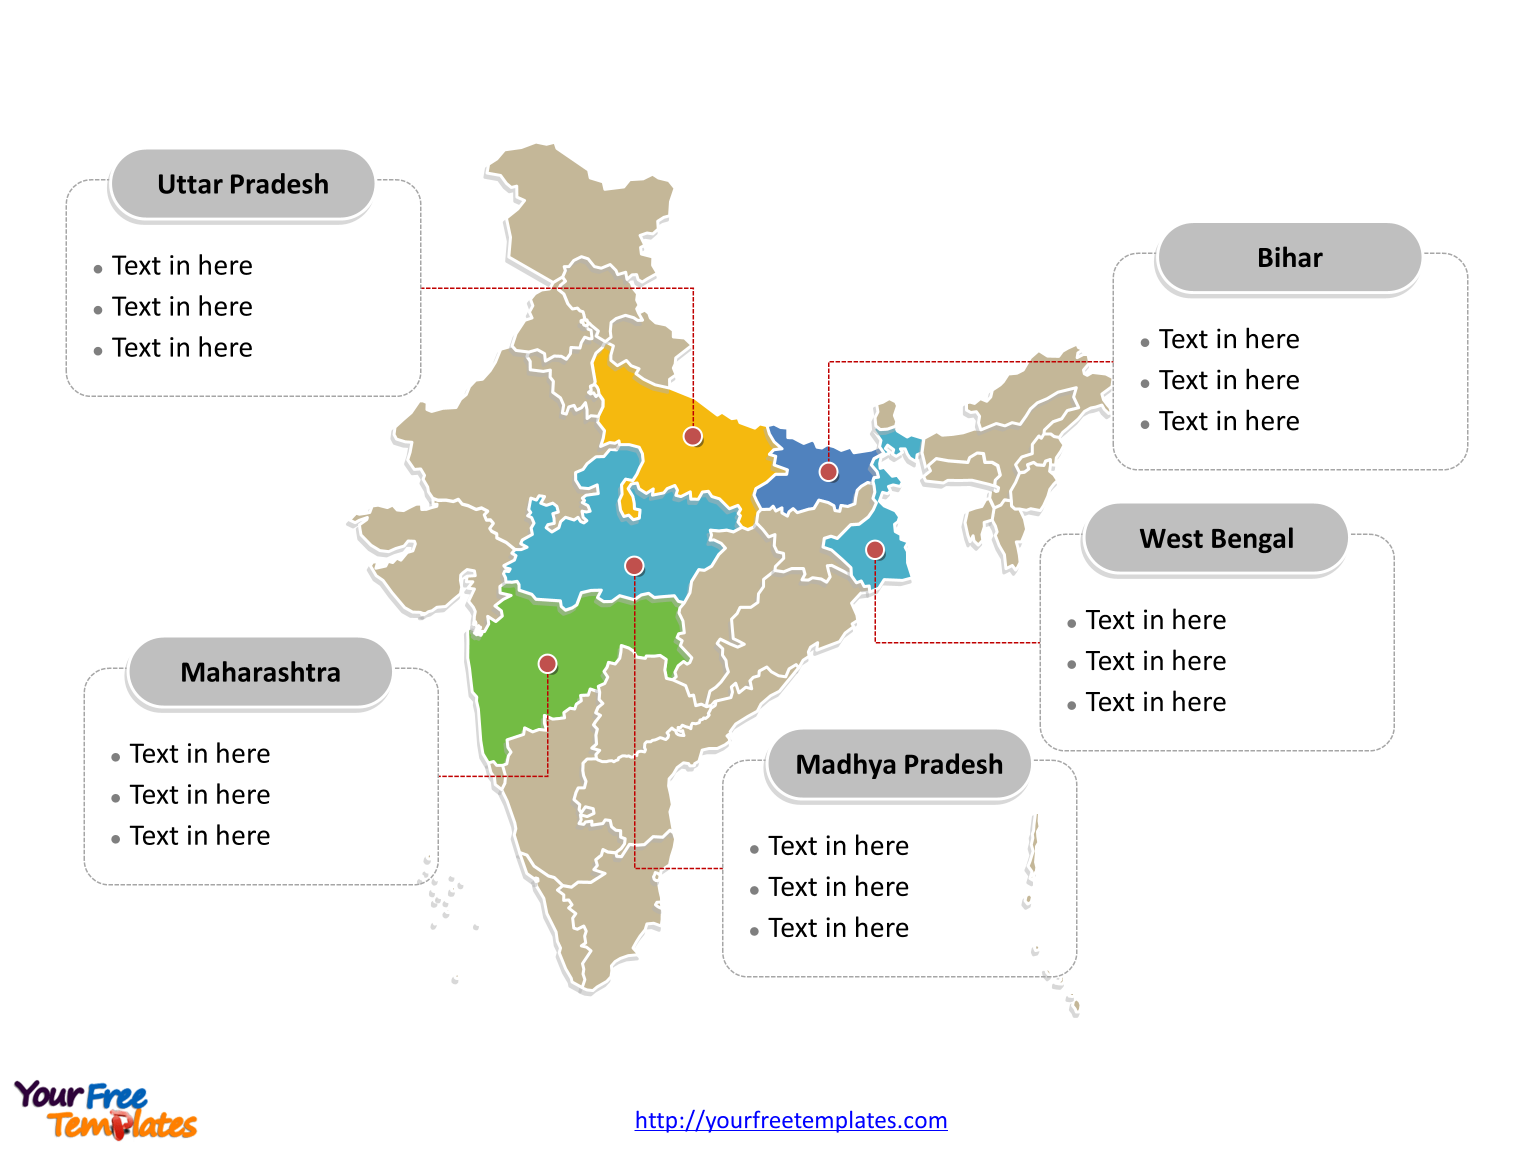 India map blank templates free powerpoint templates map of india with political division and major states labeled on the india map blank templates gumiabroncs Images